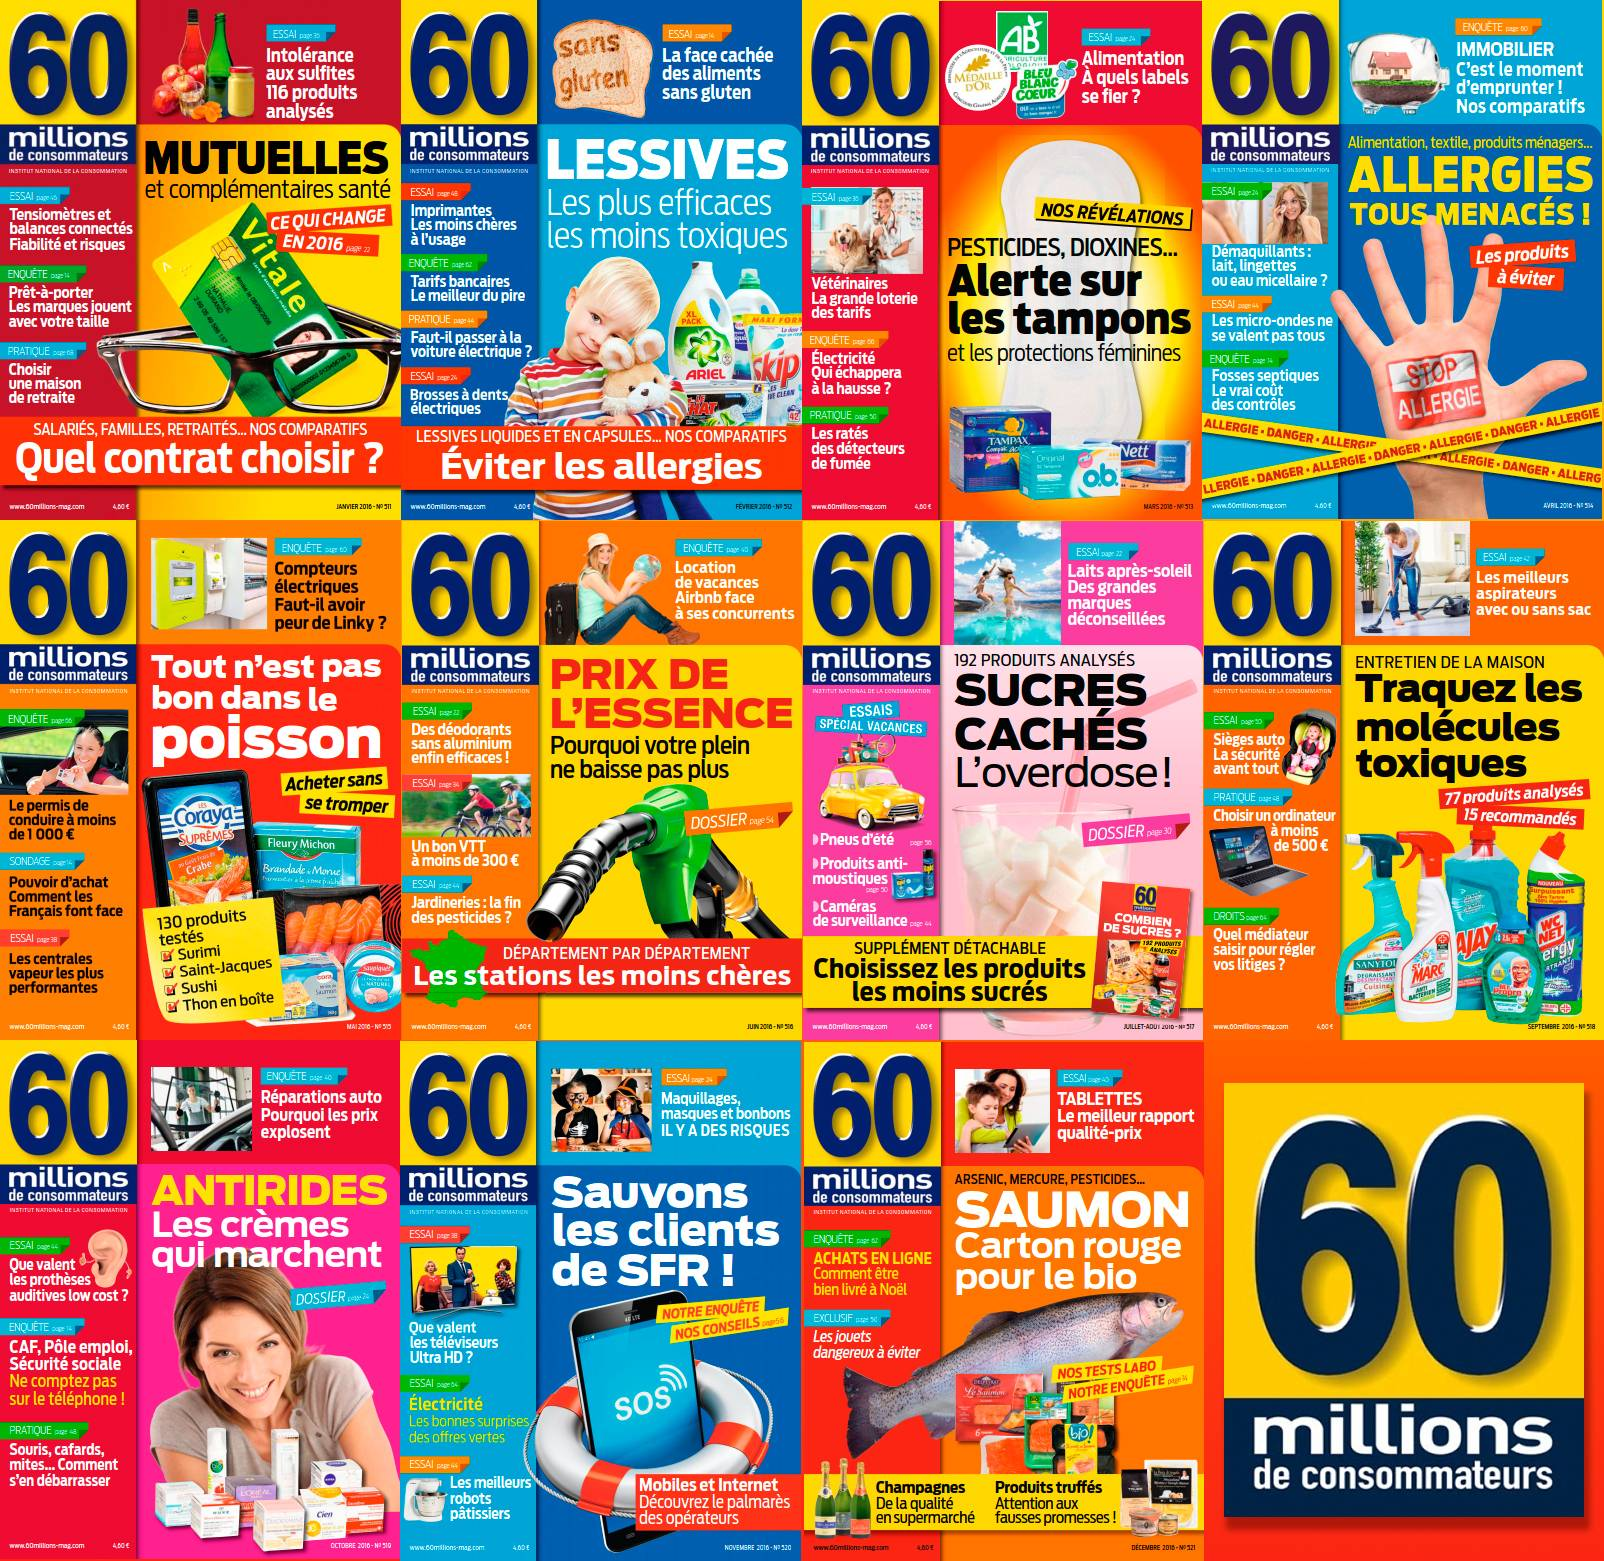 60 millions de consommateurs - Full Year 2016 Collection